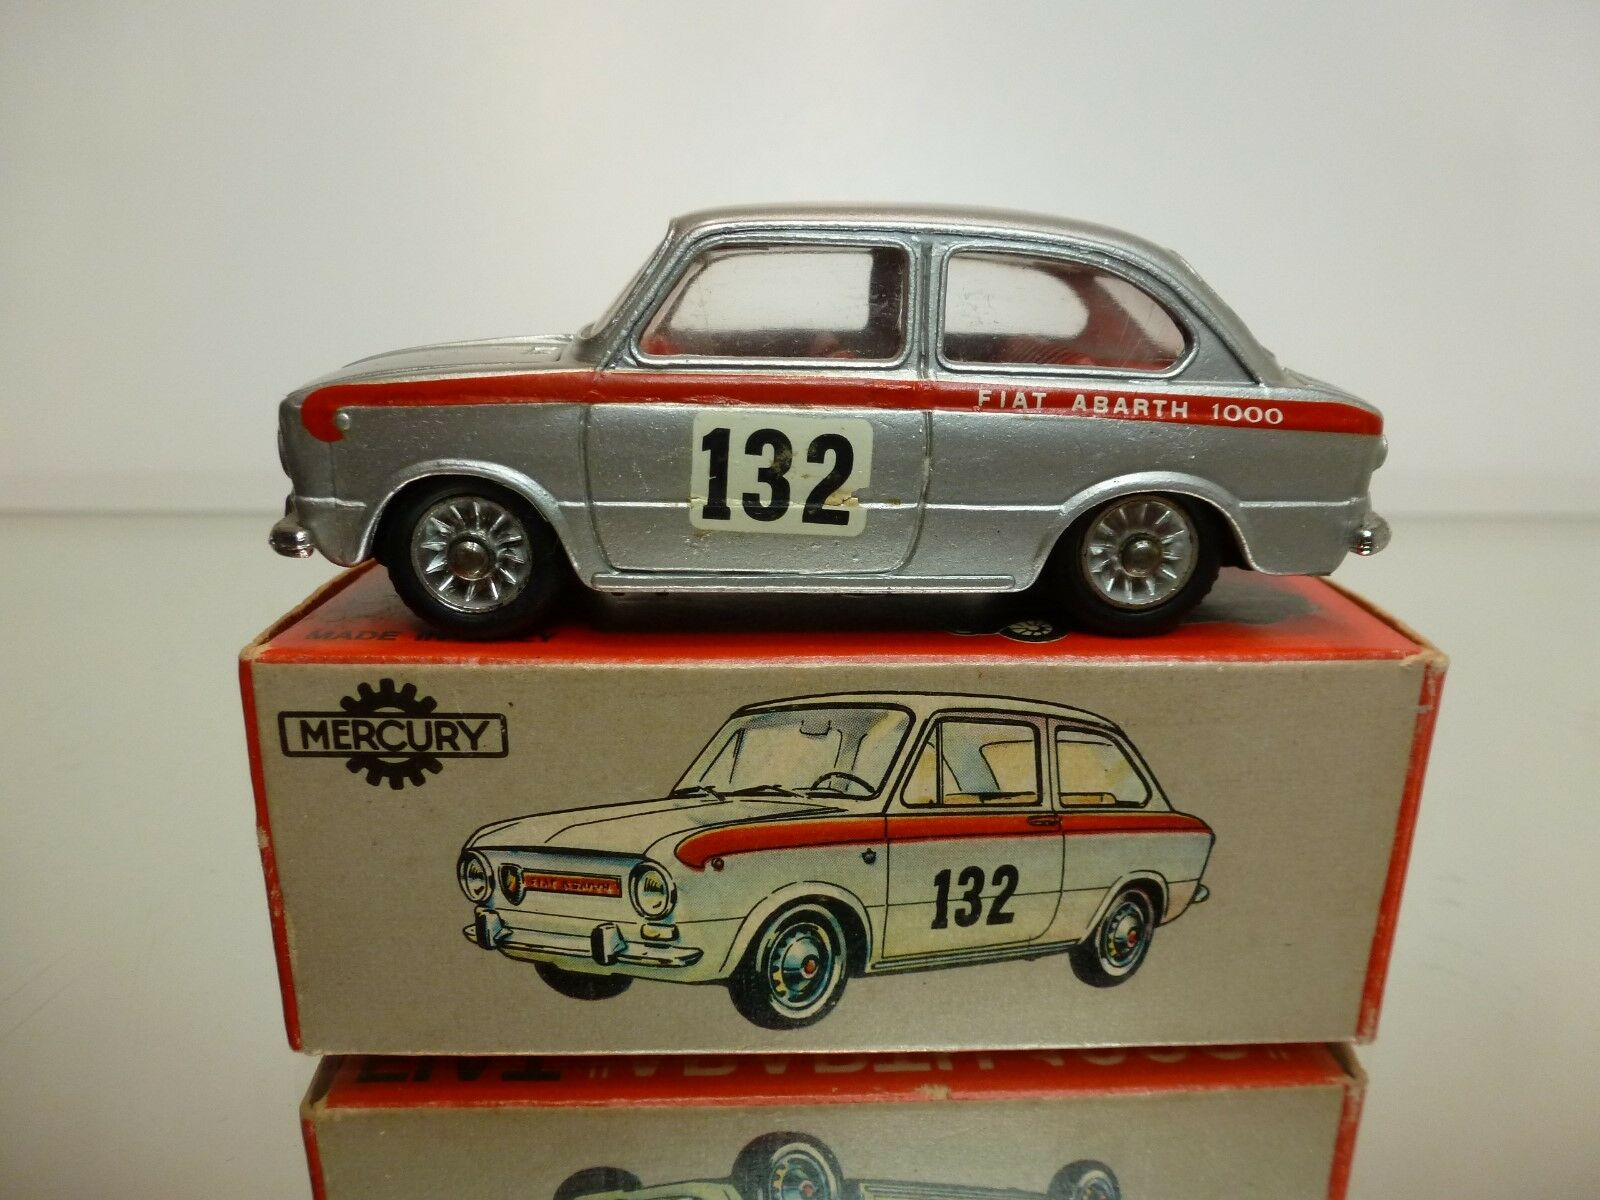 MERCURY 1 43 FIAT 850 ABARTH 1000 - NO= 42  - EXTREMELY RARE  - EXCELLENT IN BOX